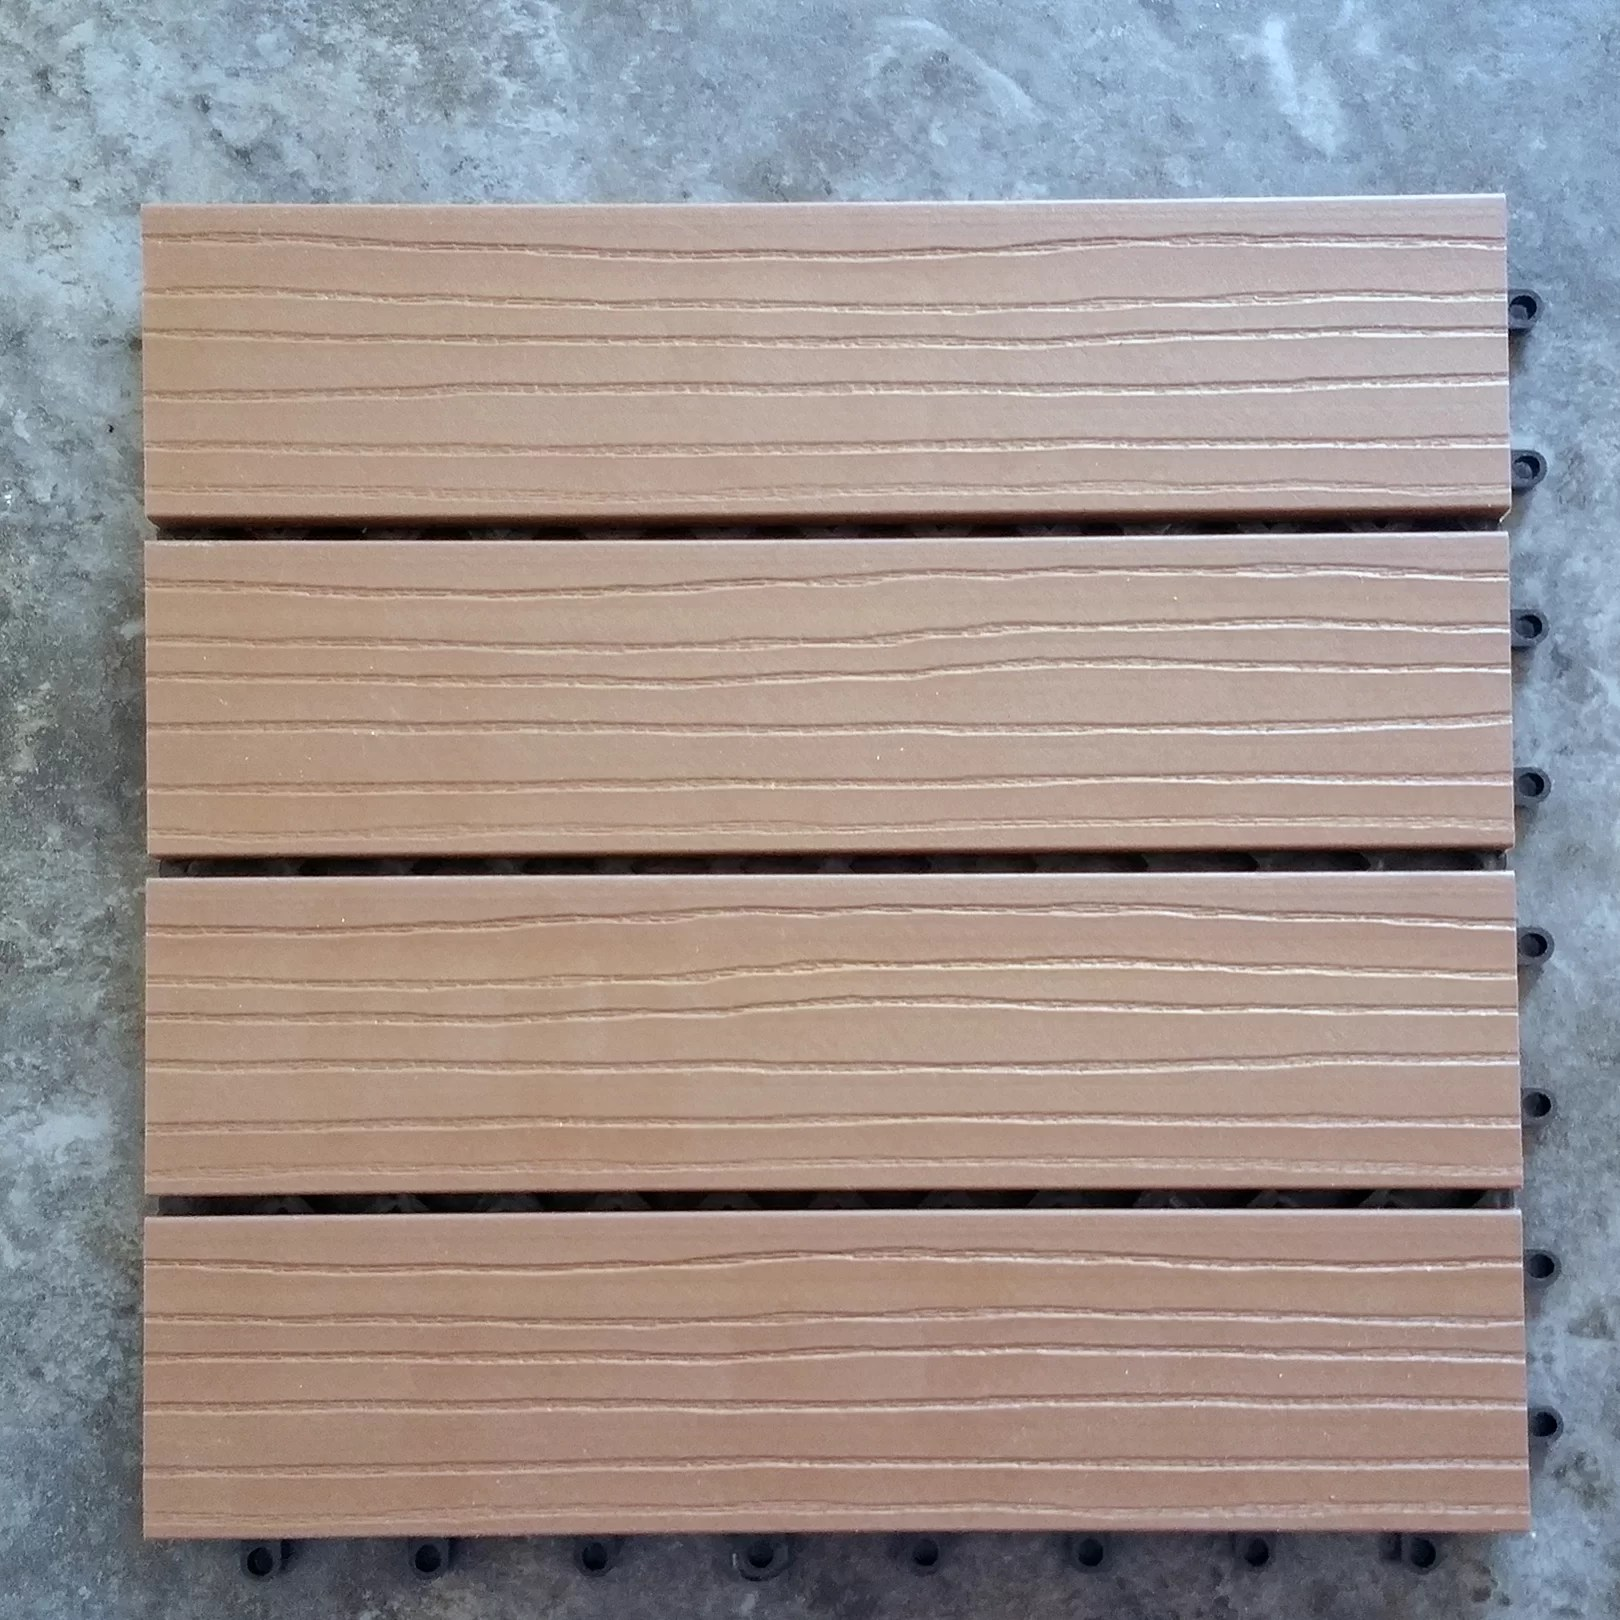 Composite Deck Tiles Vifah Composite Cedar 12 Quot X 12 Quot Interlocking Deck Tiles